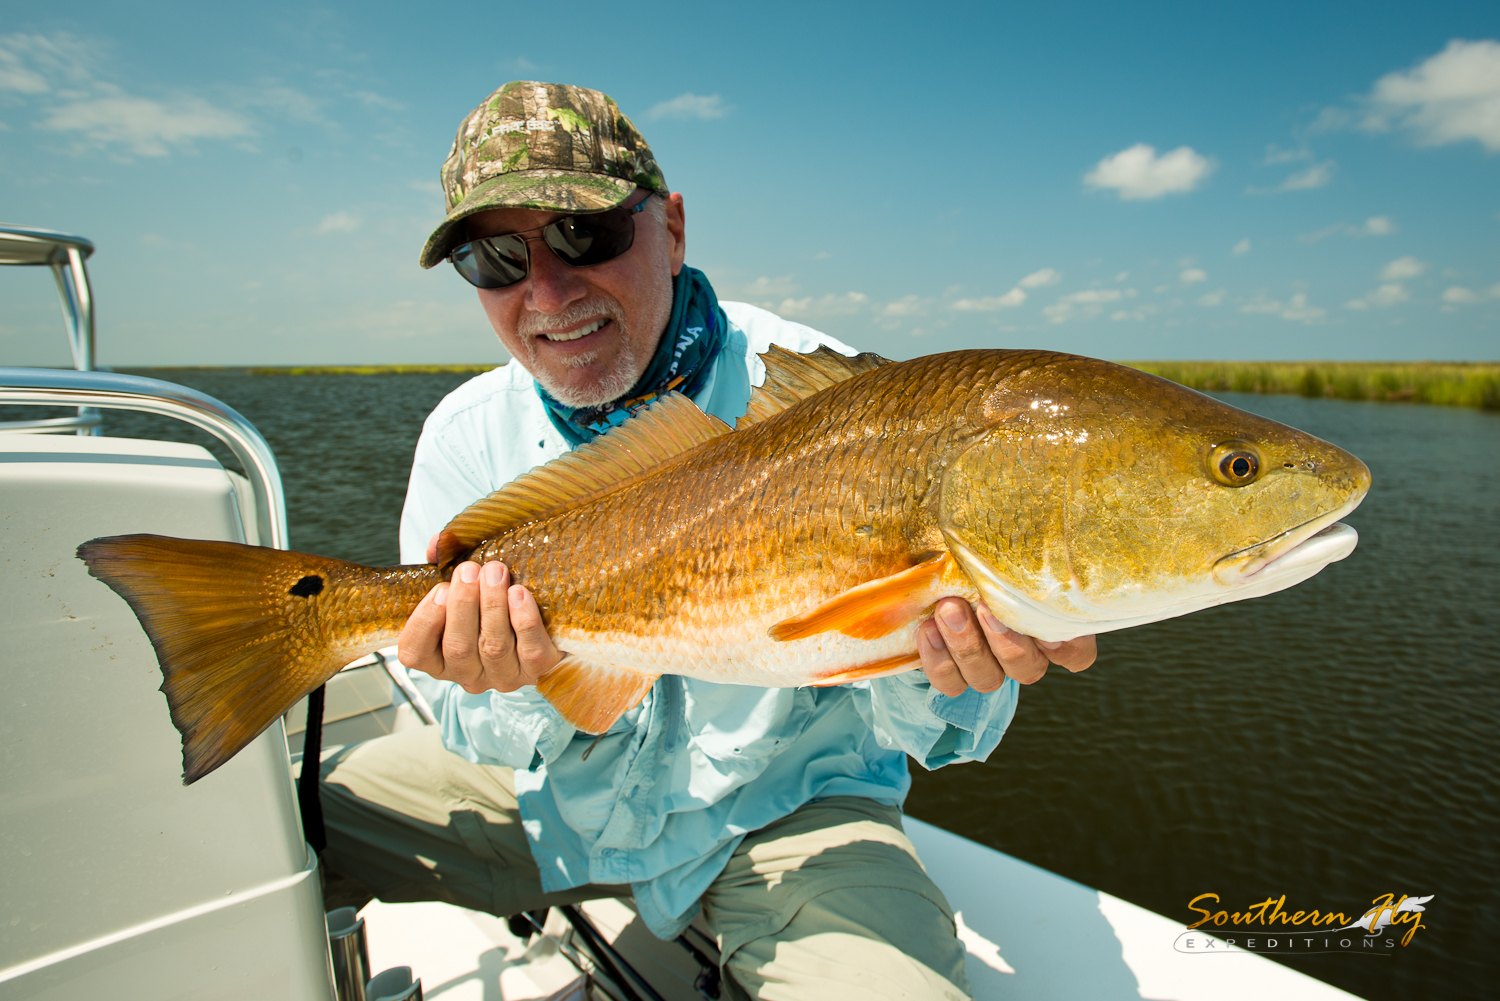 fly fishing guide new orleans louisiana September 2017 guide Southern Fly Expeditions